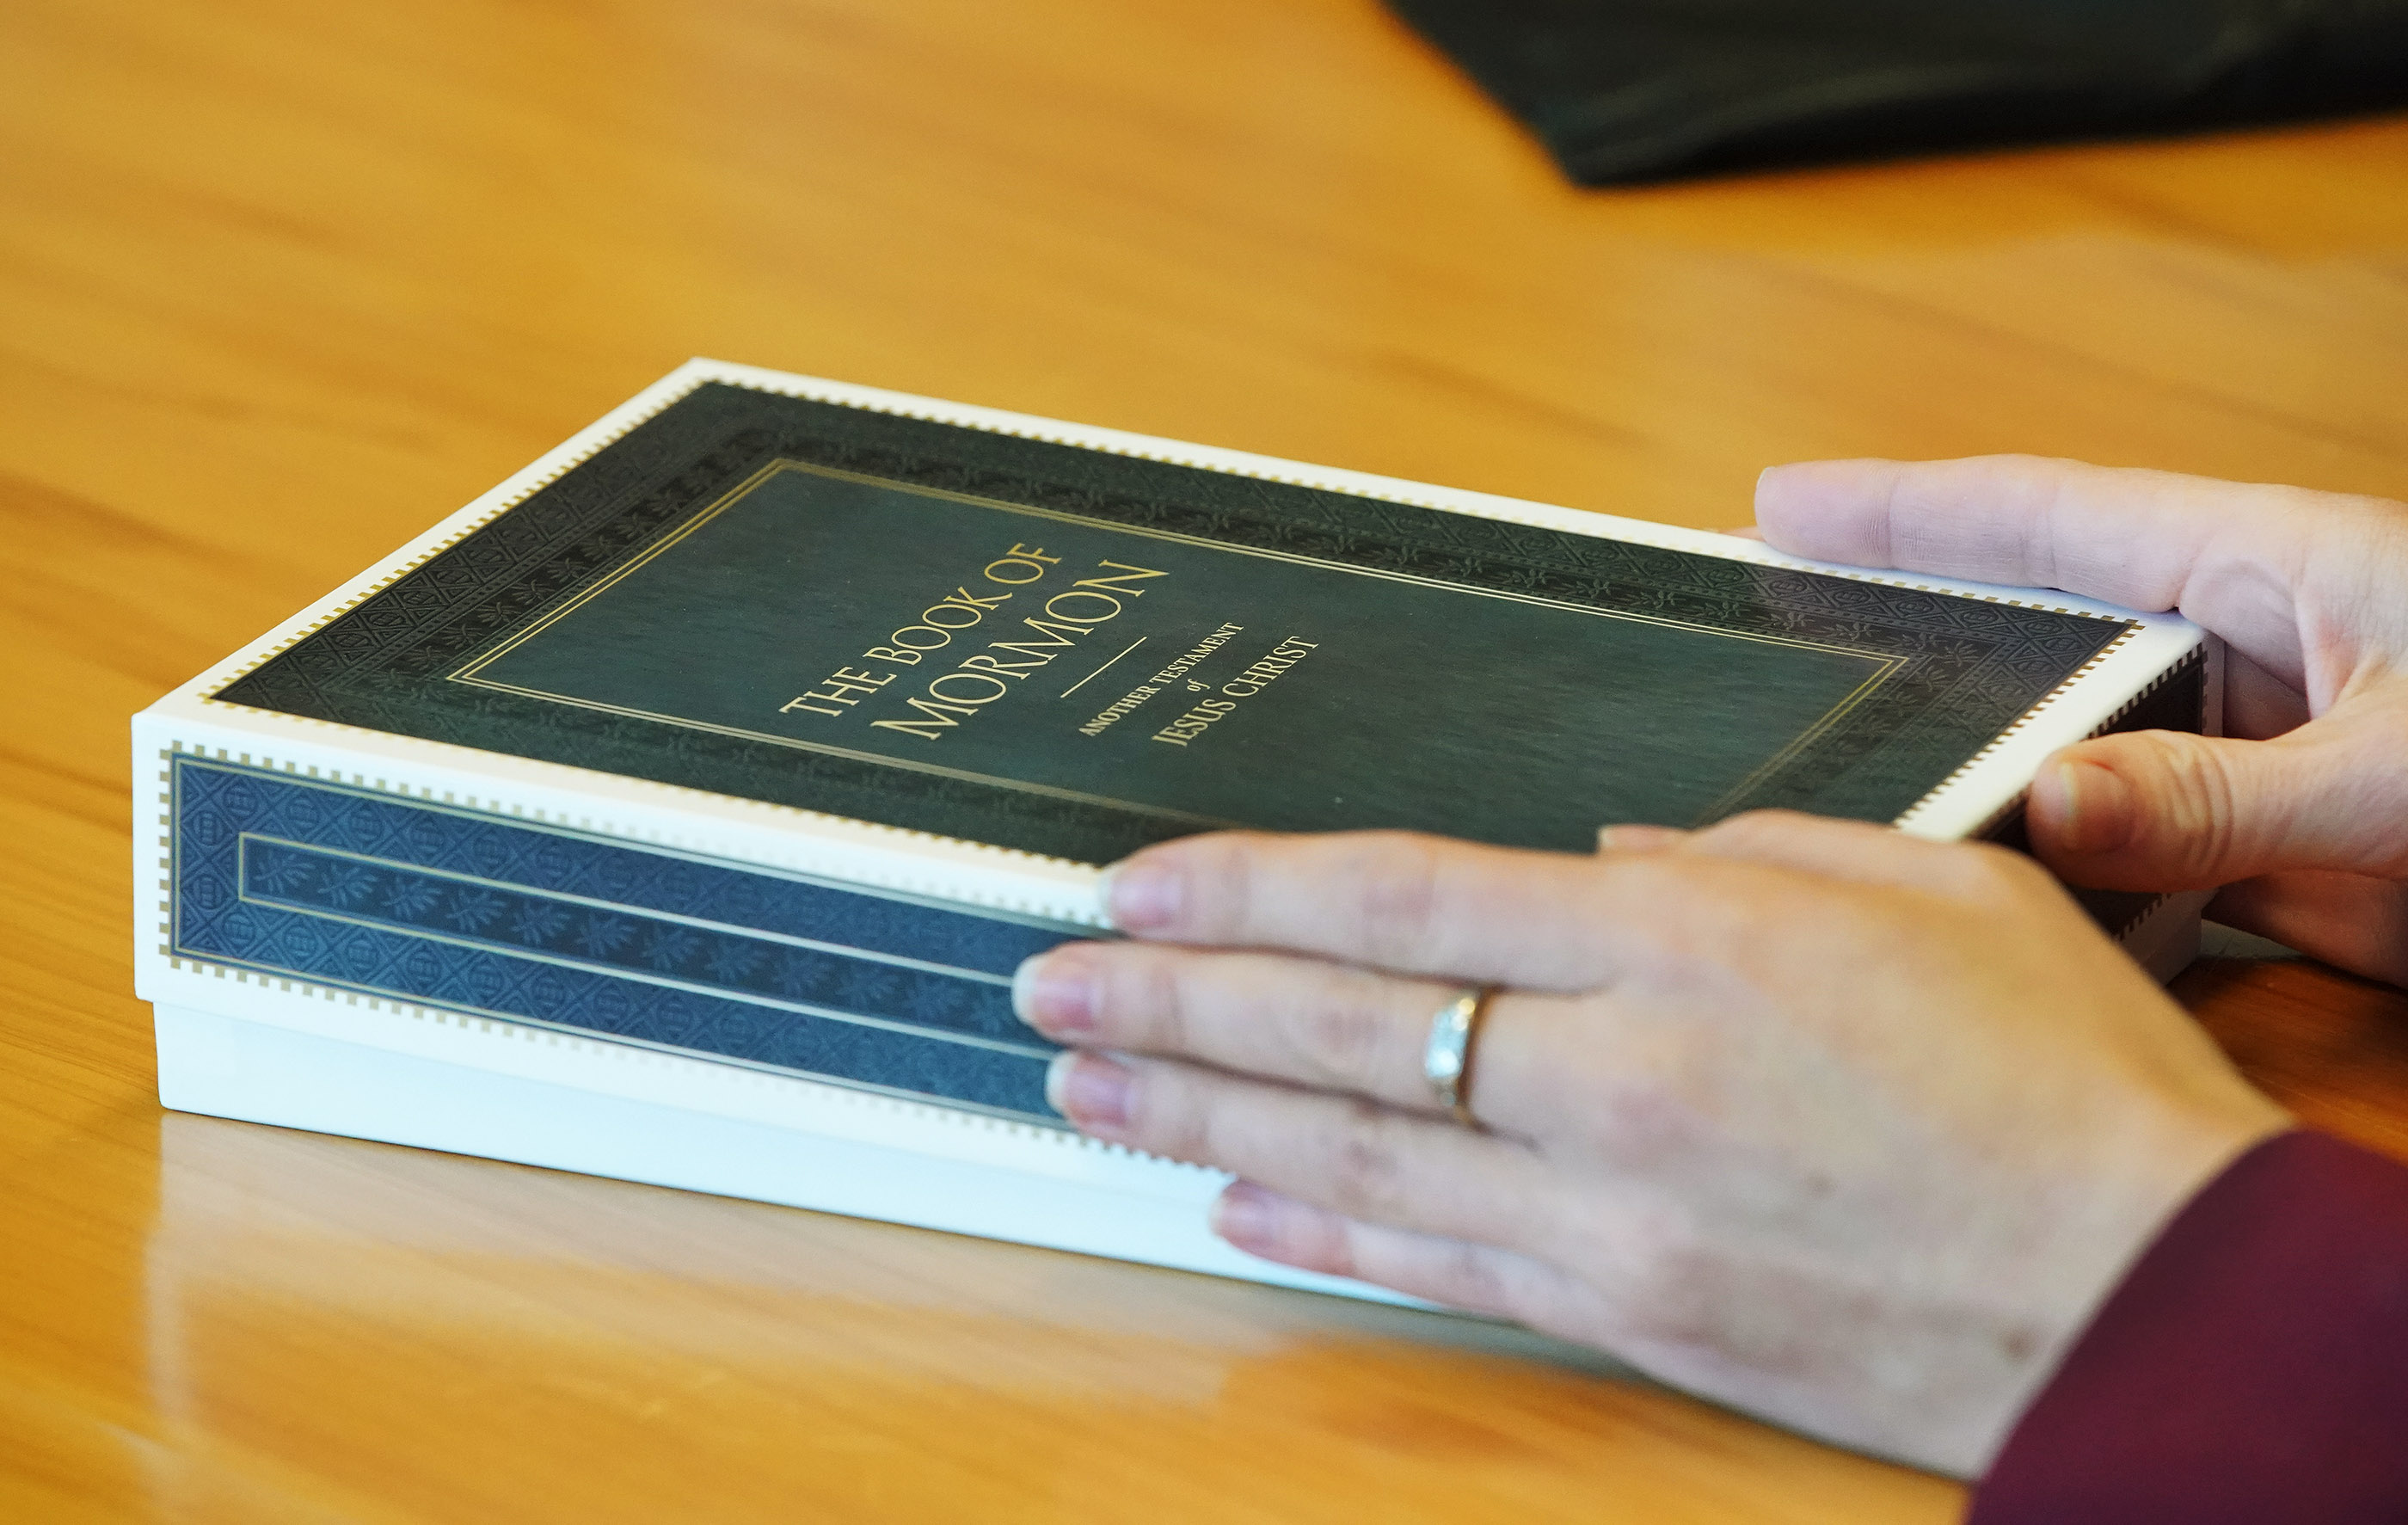 The personalized Book of Mormon given by President Russell M. Nelson of The Church of Jesus Christ of Latter-day Saints to New Zealand Prime Minister Jacinda Ardern in Wellington, New Zealand, on Monday, May 20, 2019.